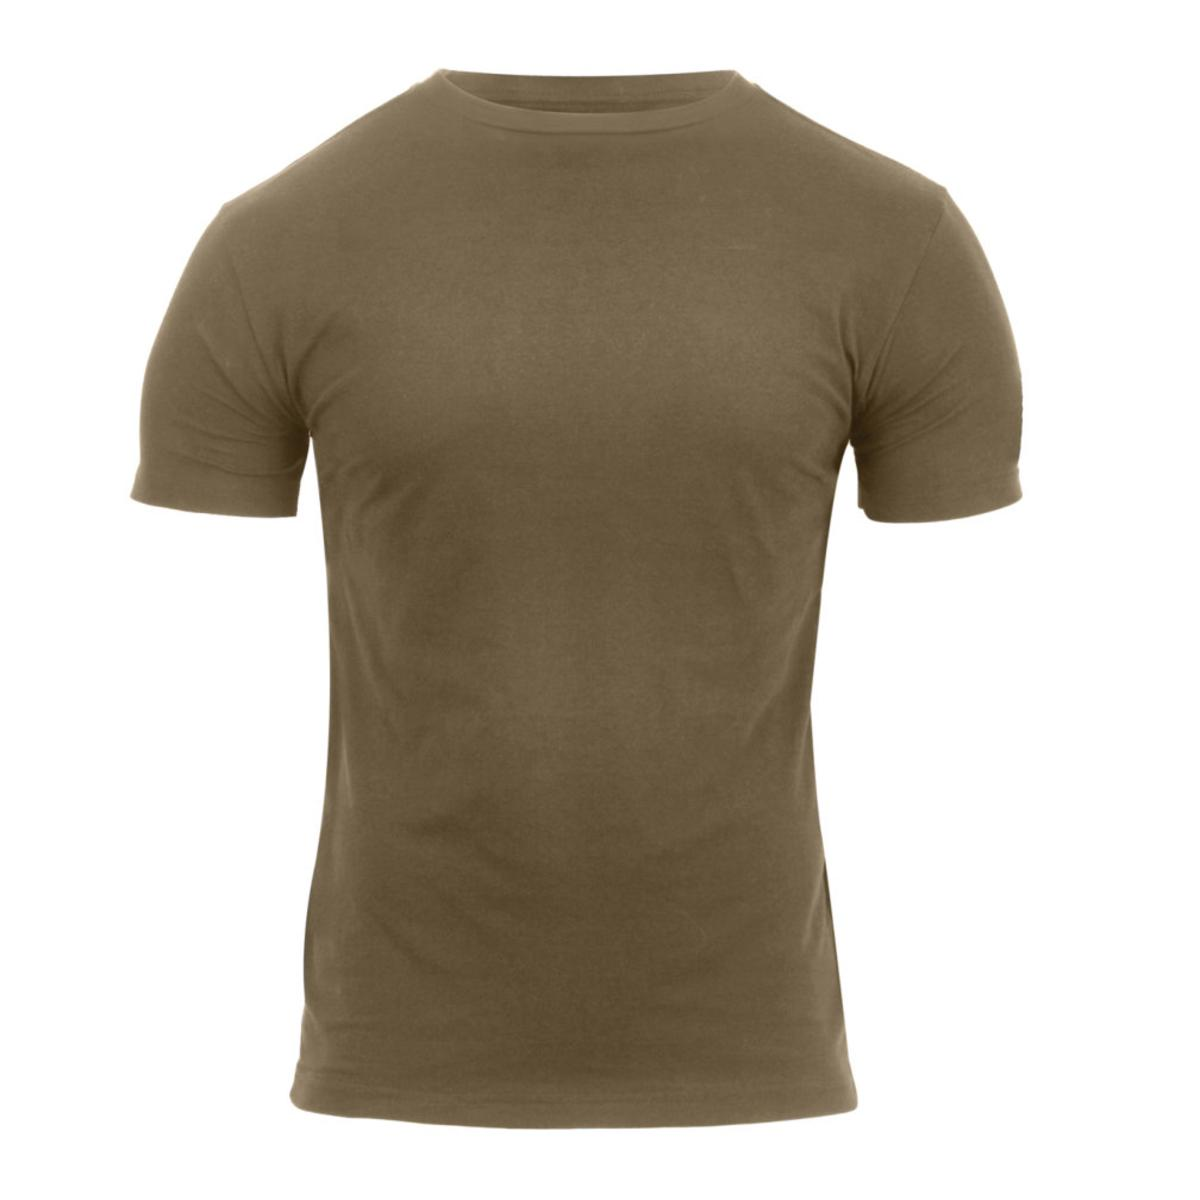 76806596 Tops Rothco Athletic Fit Solid Color Military T-Shirt